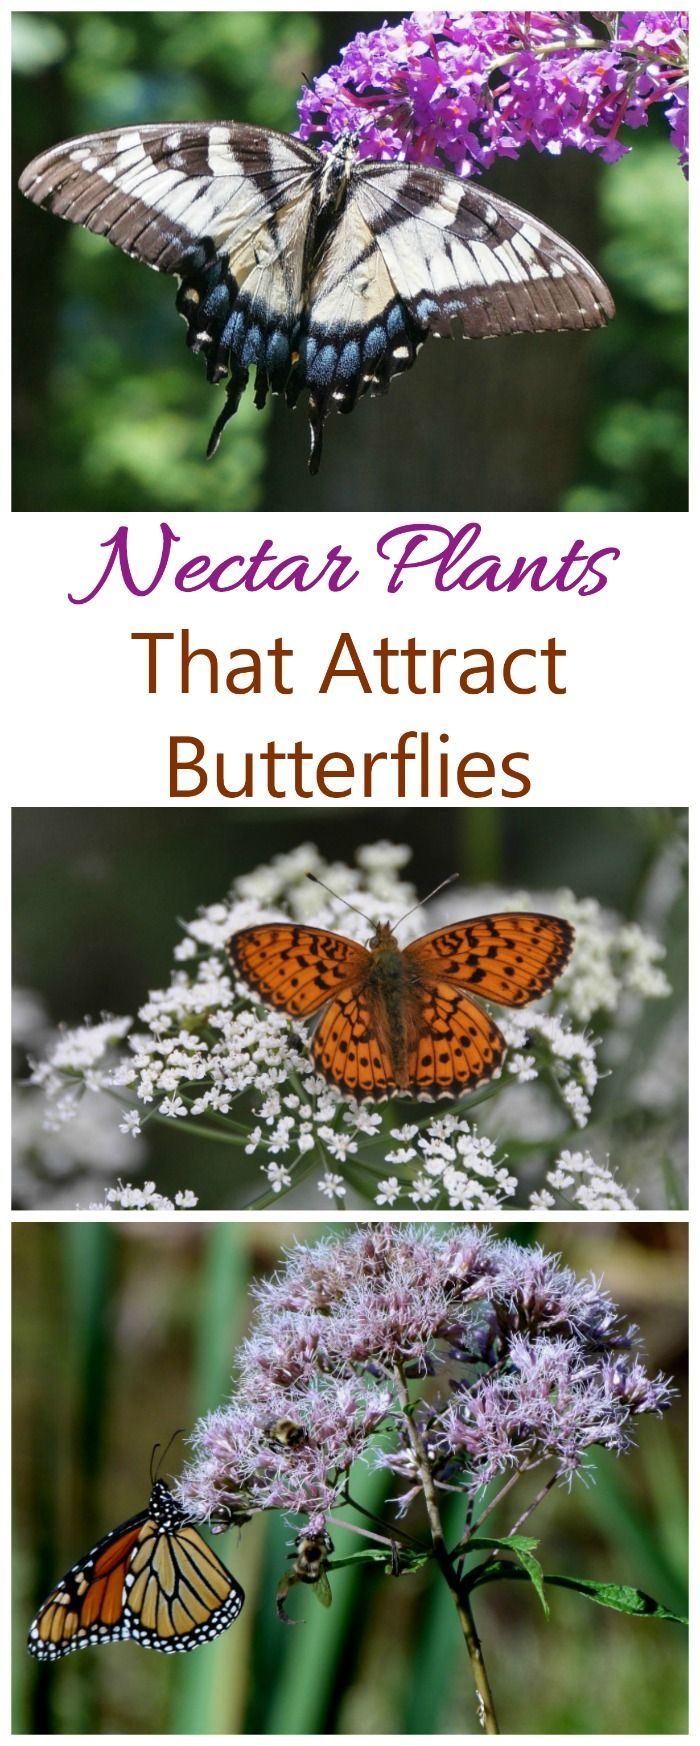 Nectar Plants such as yarrow, butterfly weed and butterfly bush are good for attracting butterflies #nectarplants #butterflies